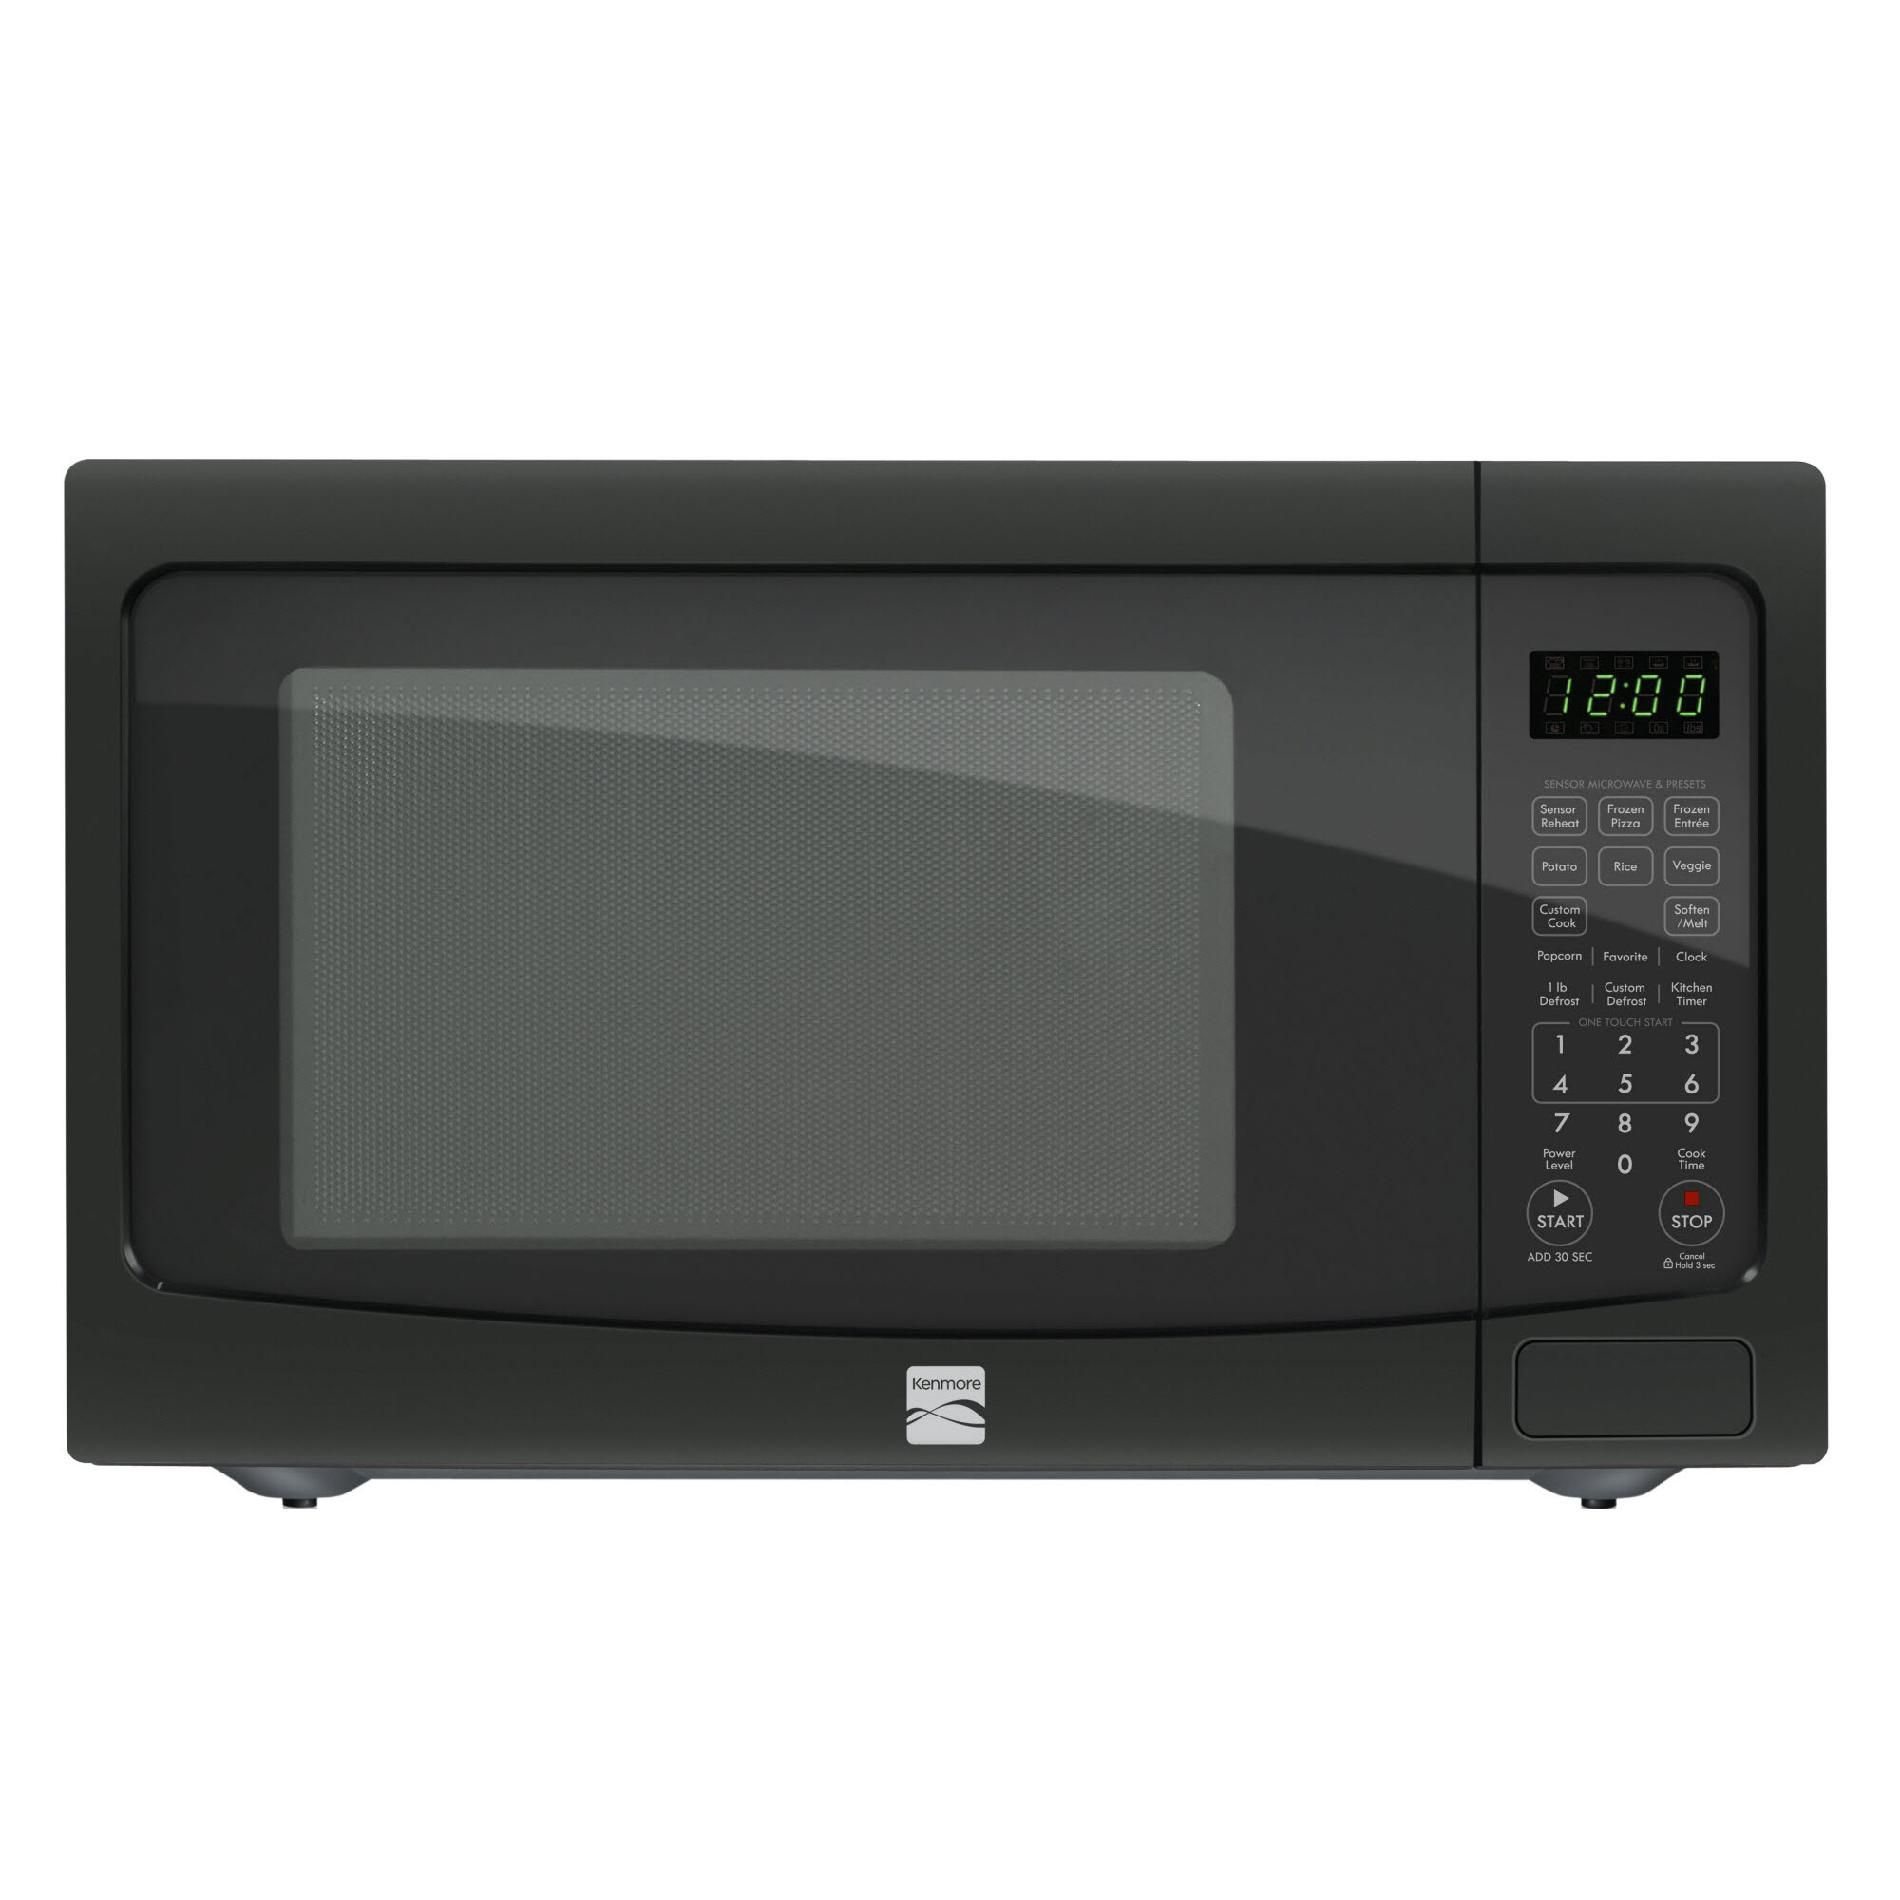 1.2 cu. ft. Countertop Microwave w/ EZ Clean